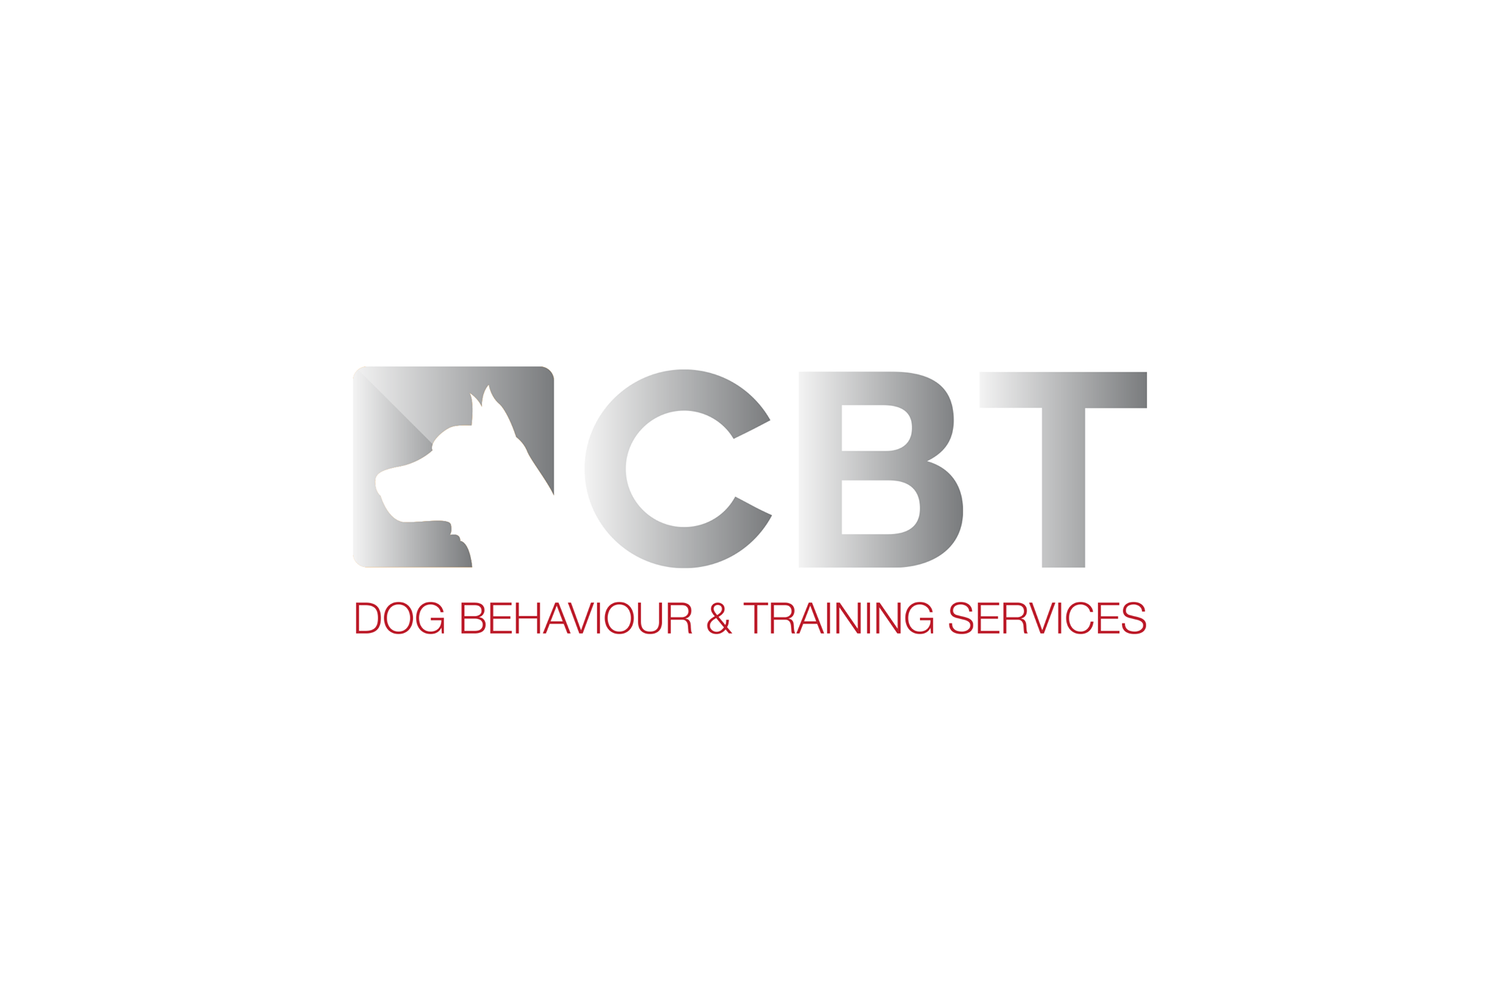 Action Patterns Cbt Dog Behaviour Training